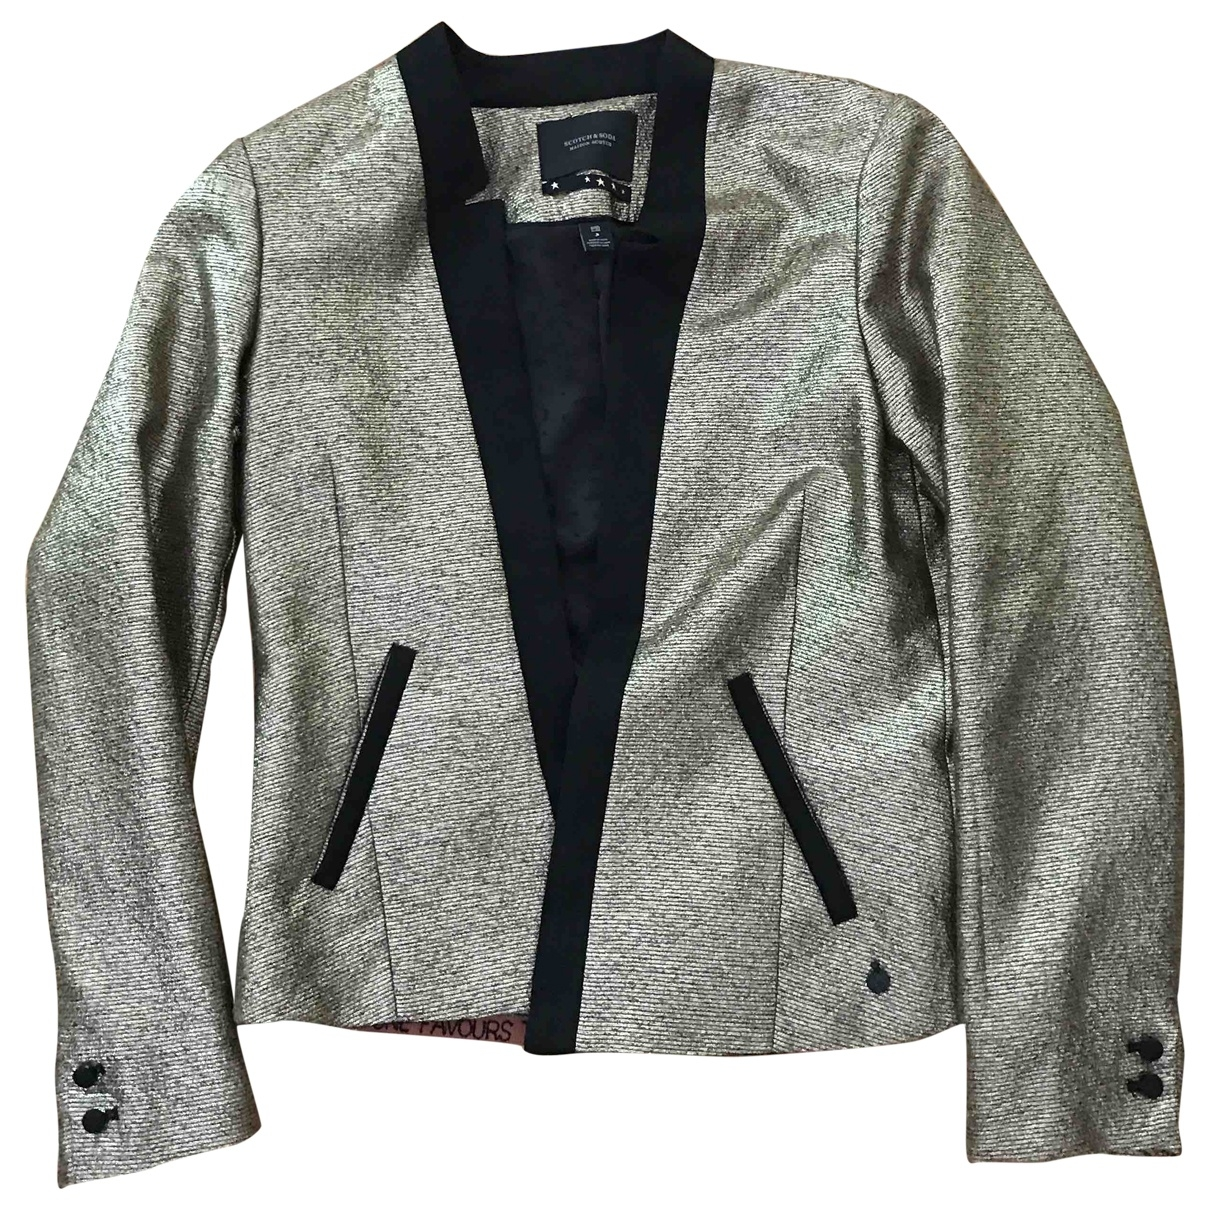 Maison Scotch \N Jacke in  Silber Polyester